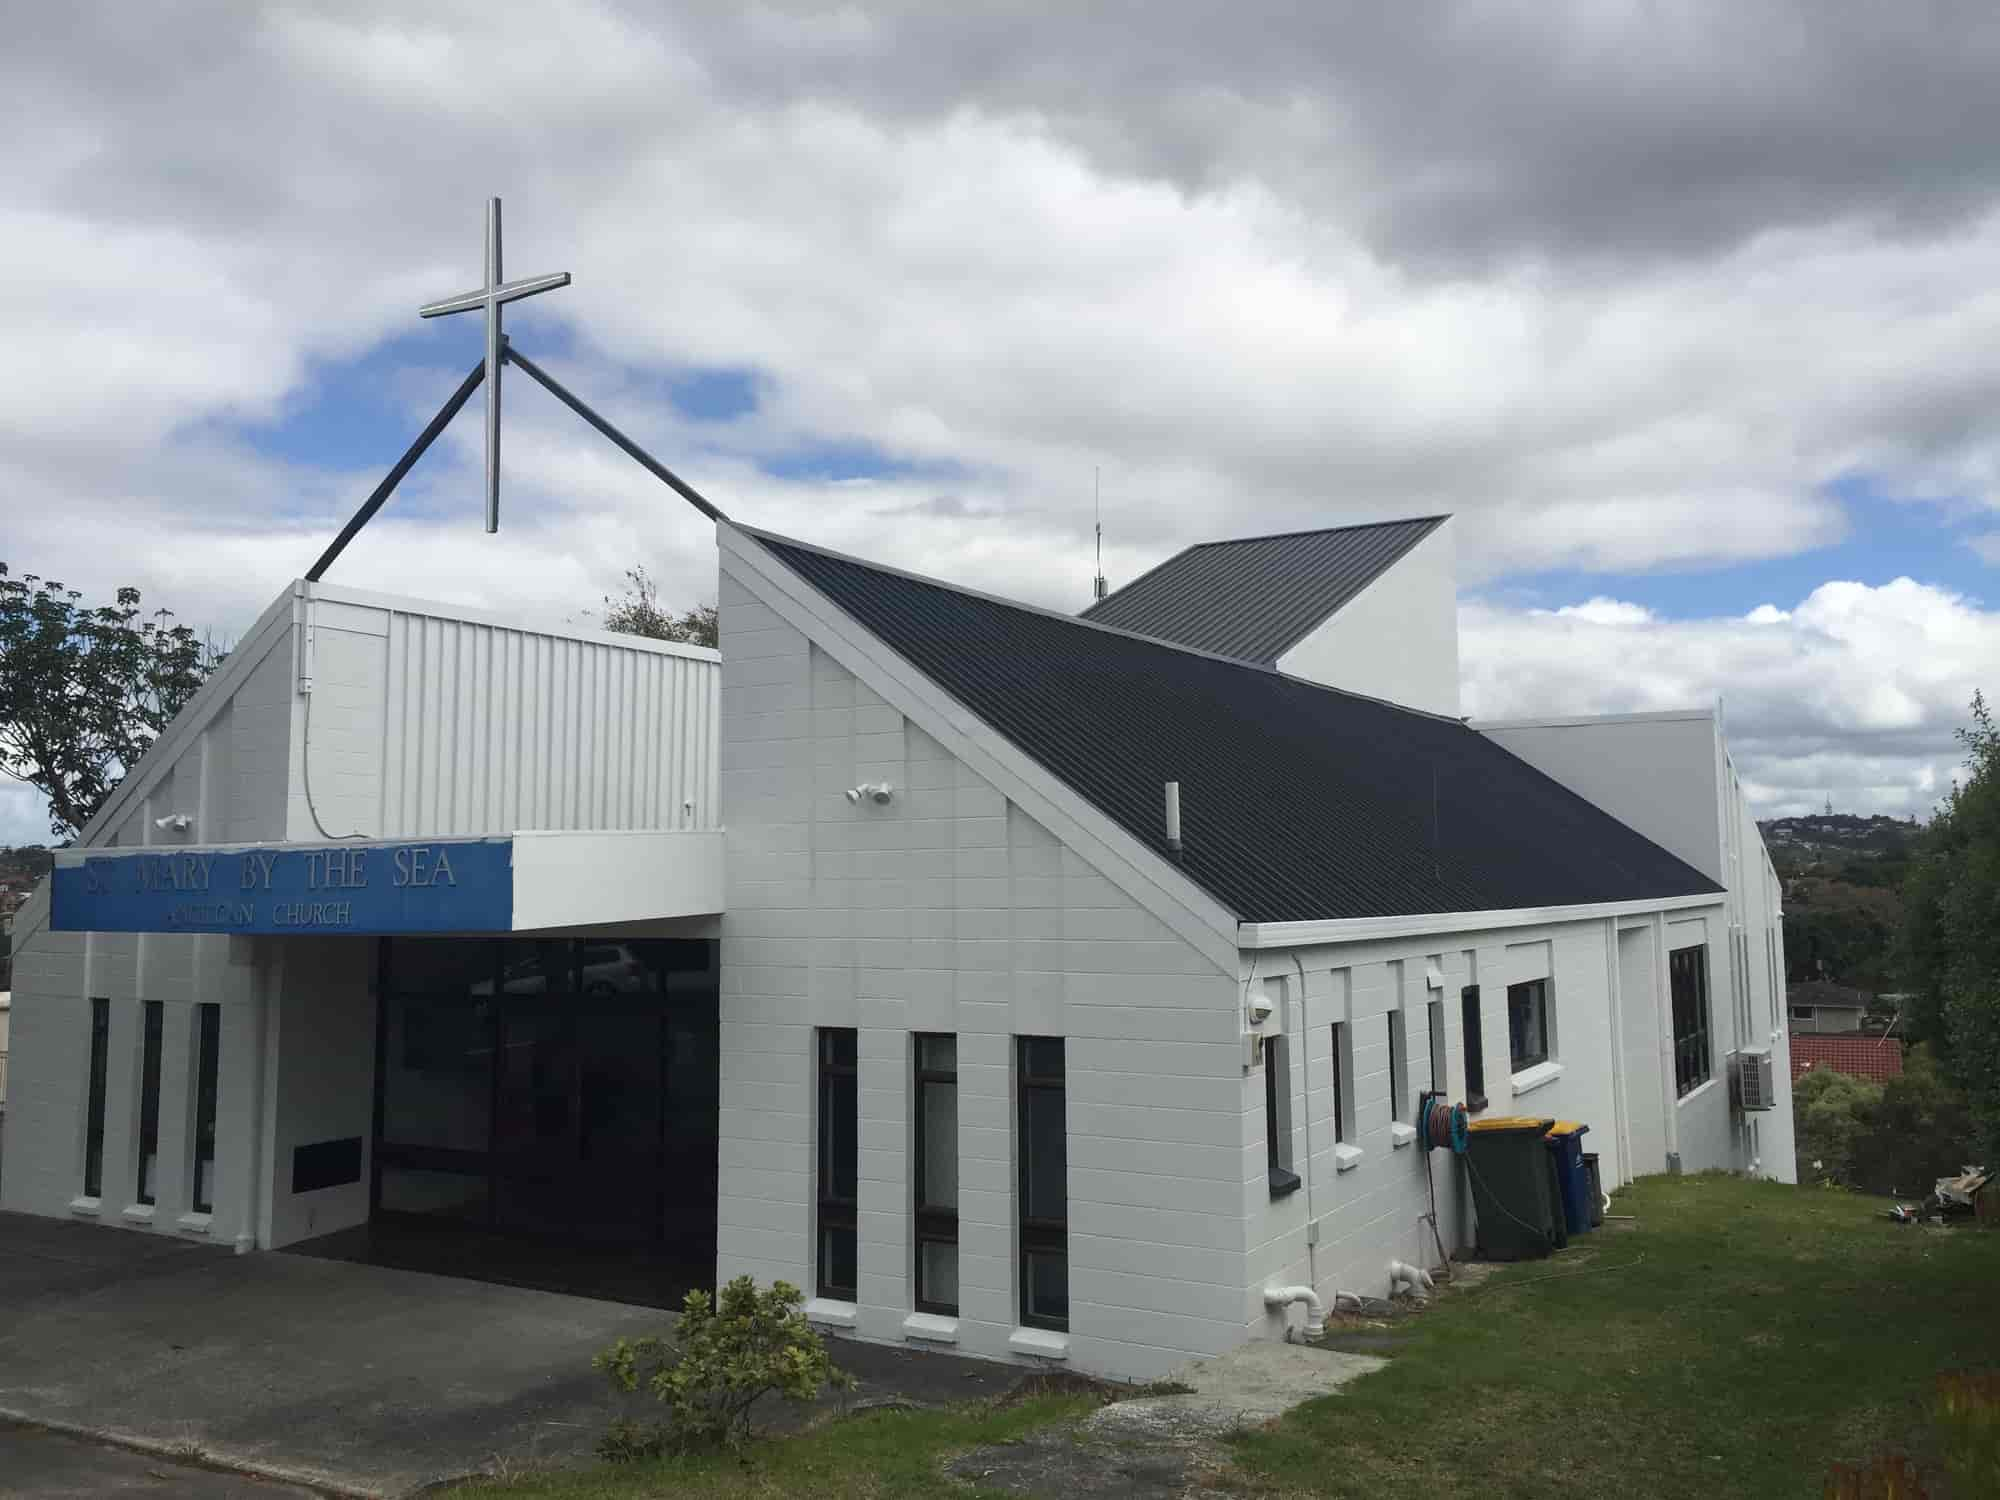 front view on church after paint